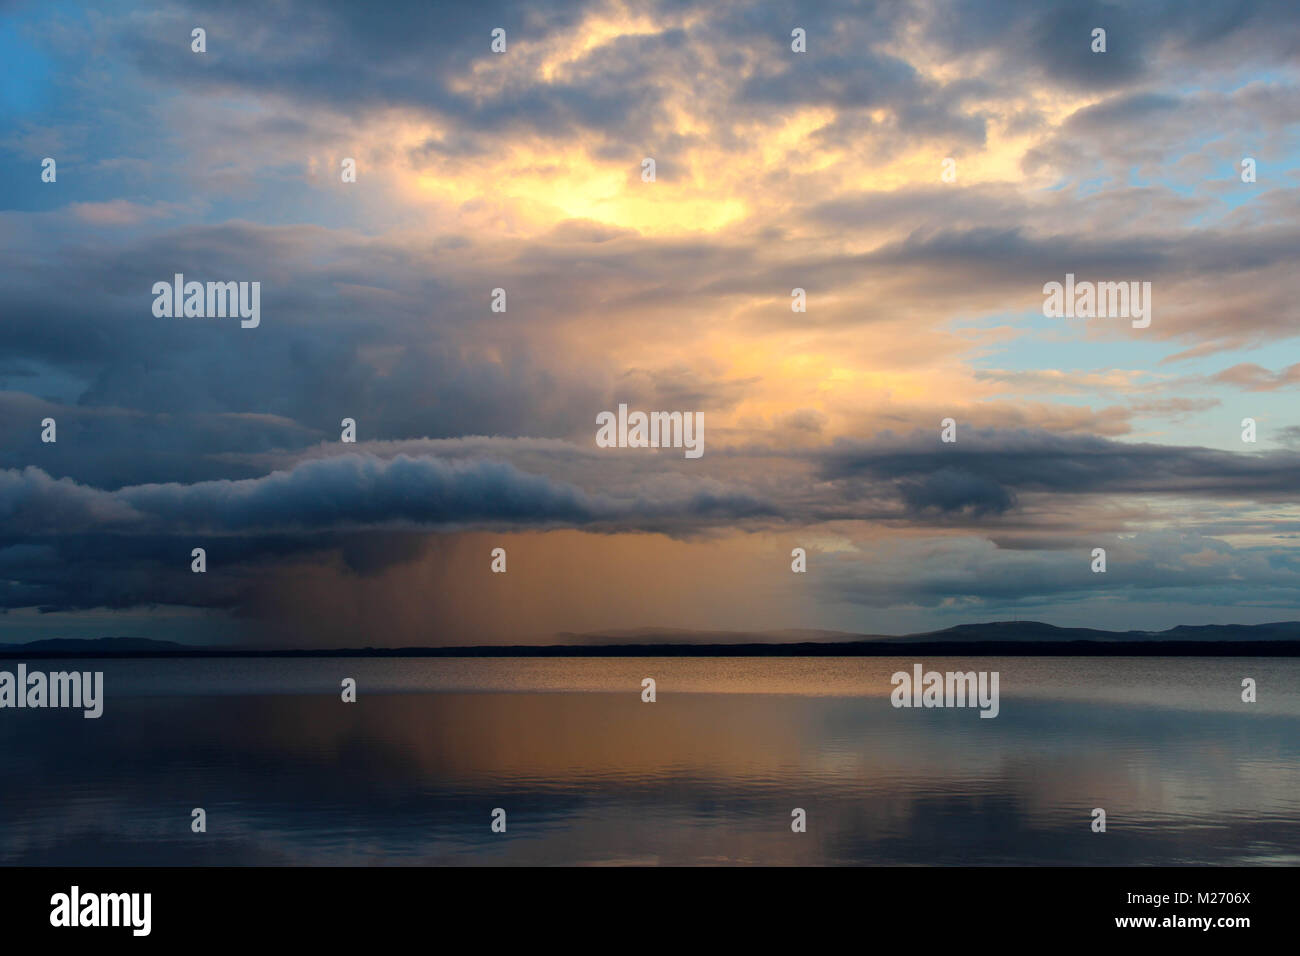 Sunset with colorful clouds and rain clouds over Orsa lake, Orsa, Dalarna, Sweden. - Stock Image